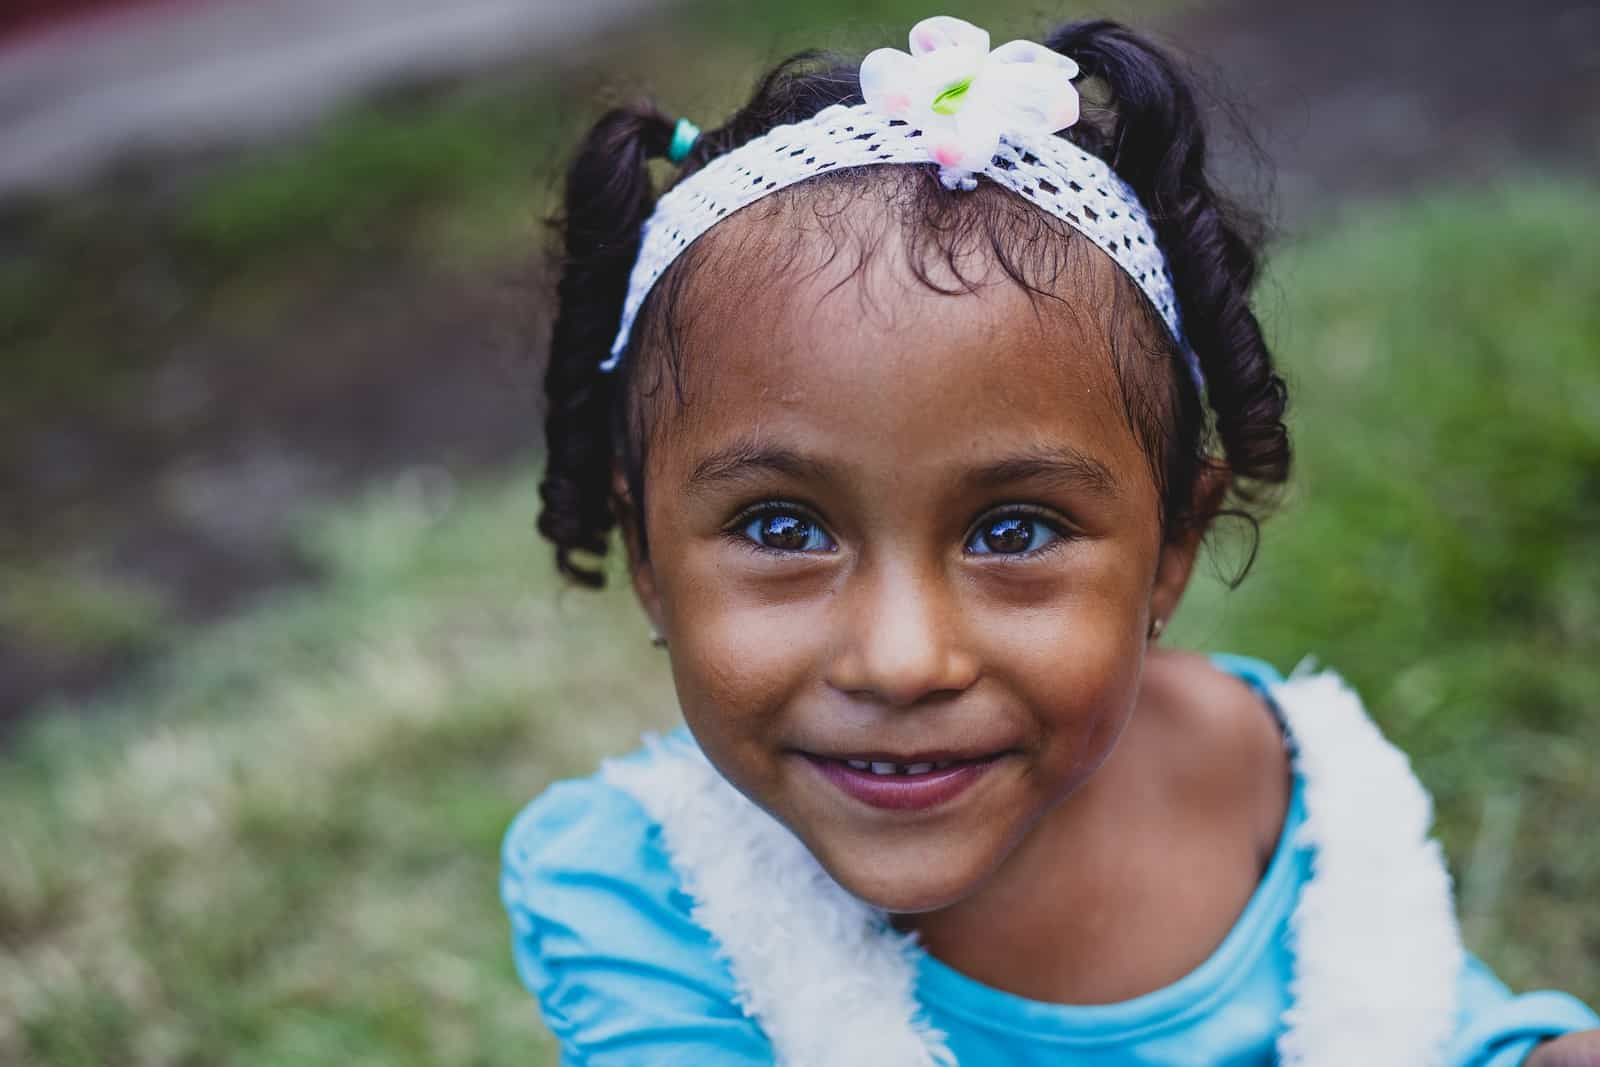 A girl in a blue shirt and white headband with a flower on it looks up into the camera.